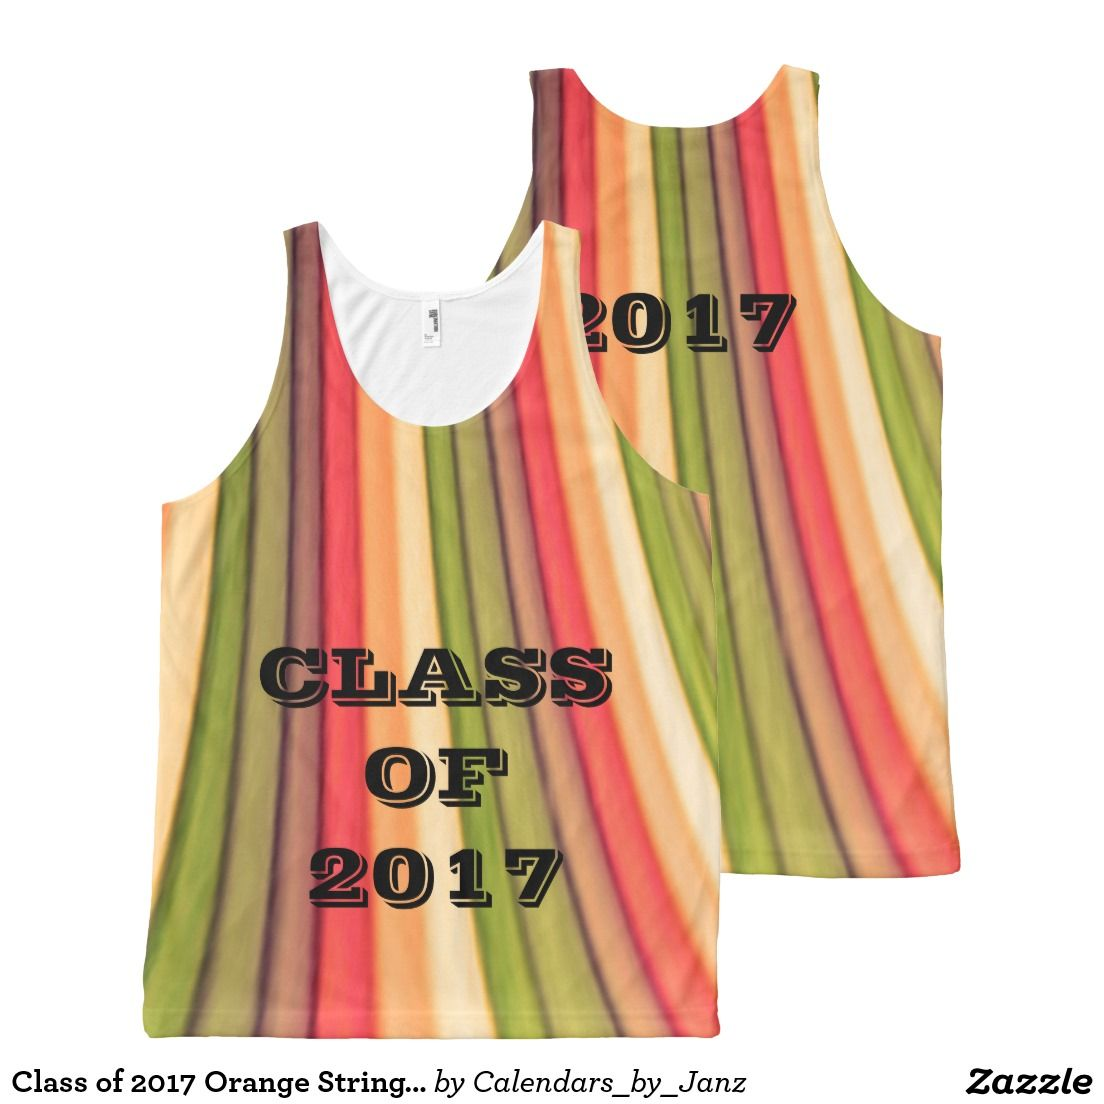 Class of 2017 Orange Strings Tank Top by Janz All-Over Print Tank Top